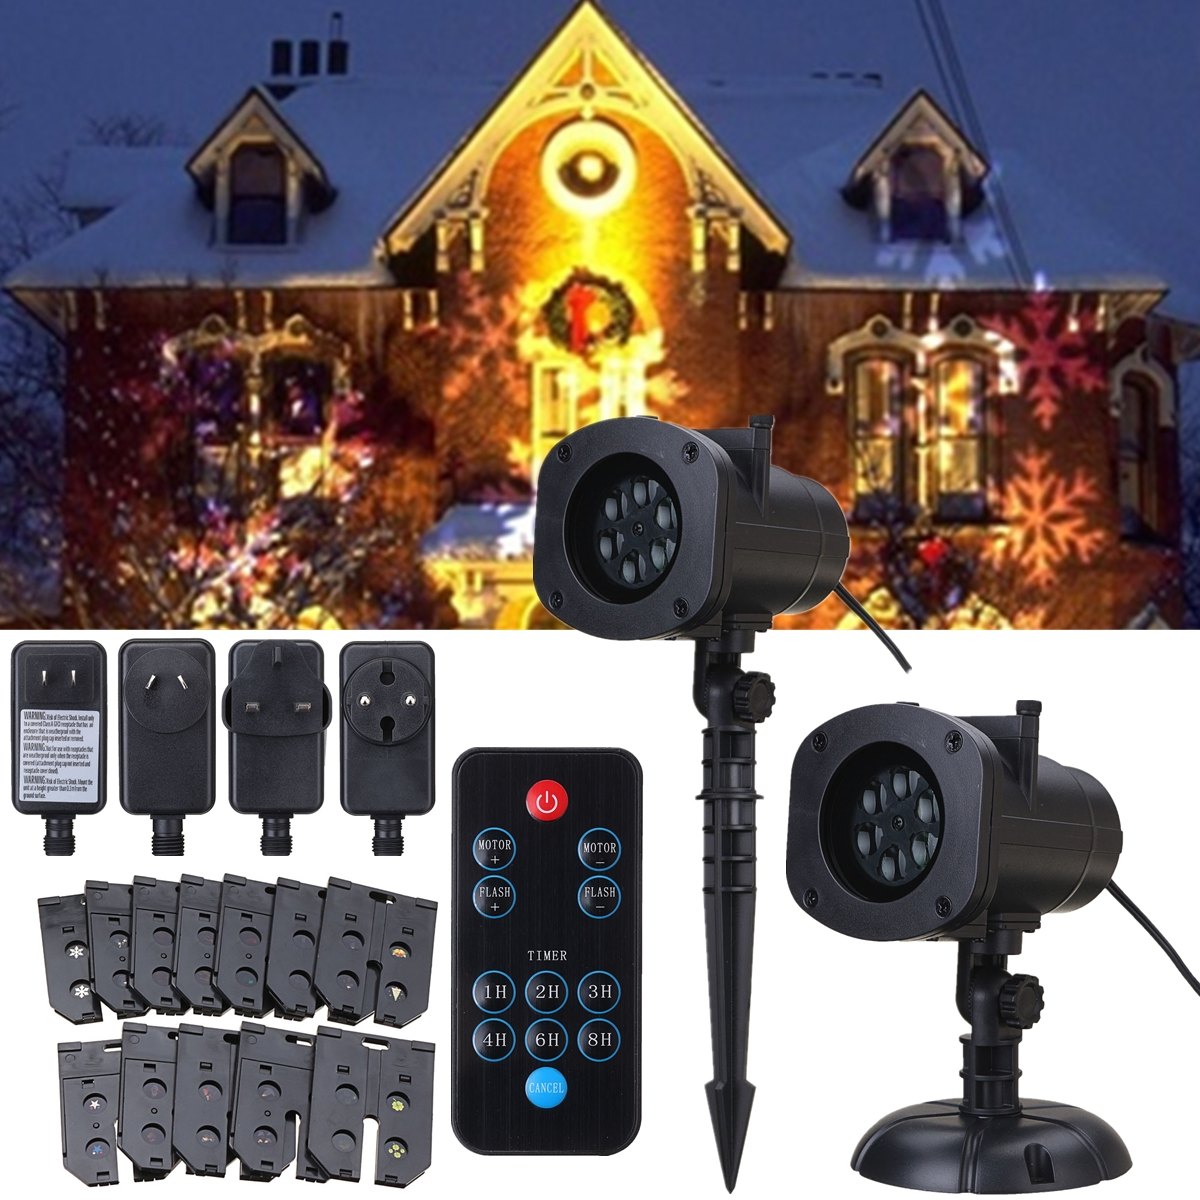 Christmas Projection Light+12 Pattern Cards+Remote Control EU/US/UK/AU Plug 6 Color LED Lights Waterproof Flash Stage Lighting free shipping us plug outdoor ip65 waterproof stage light christmas lights xmas light projector christmas uk us eu plug xx